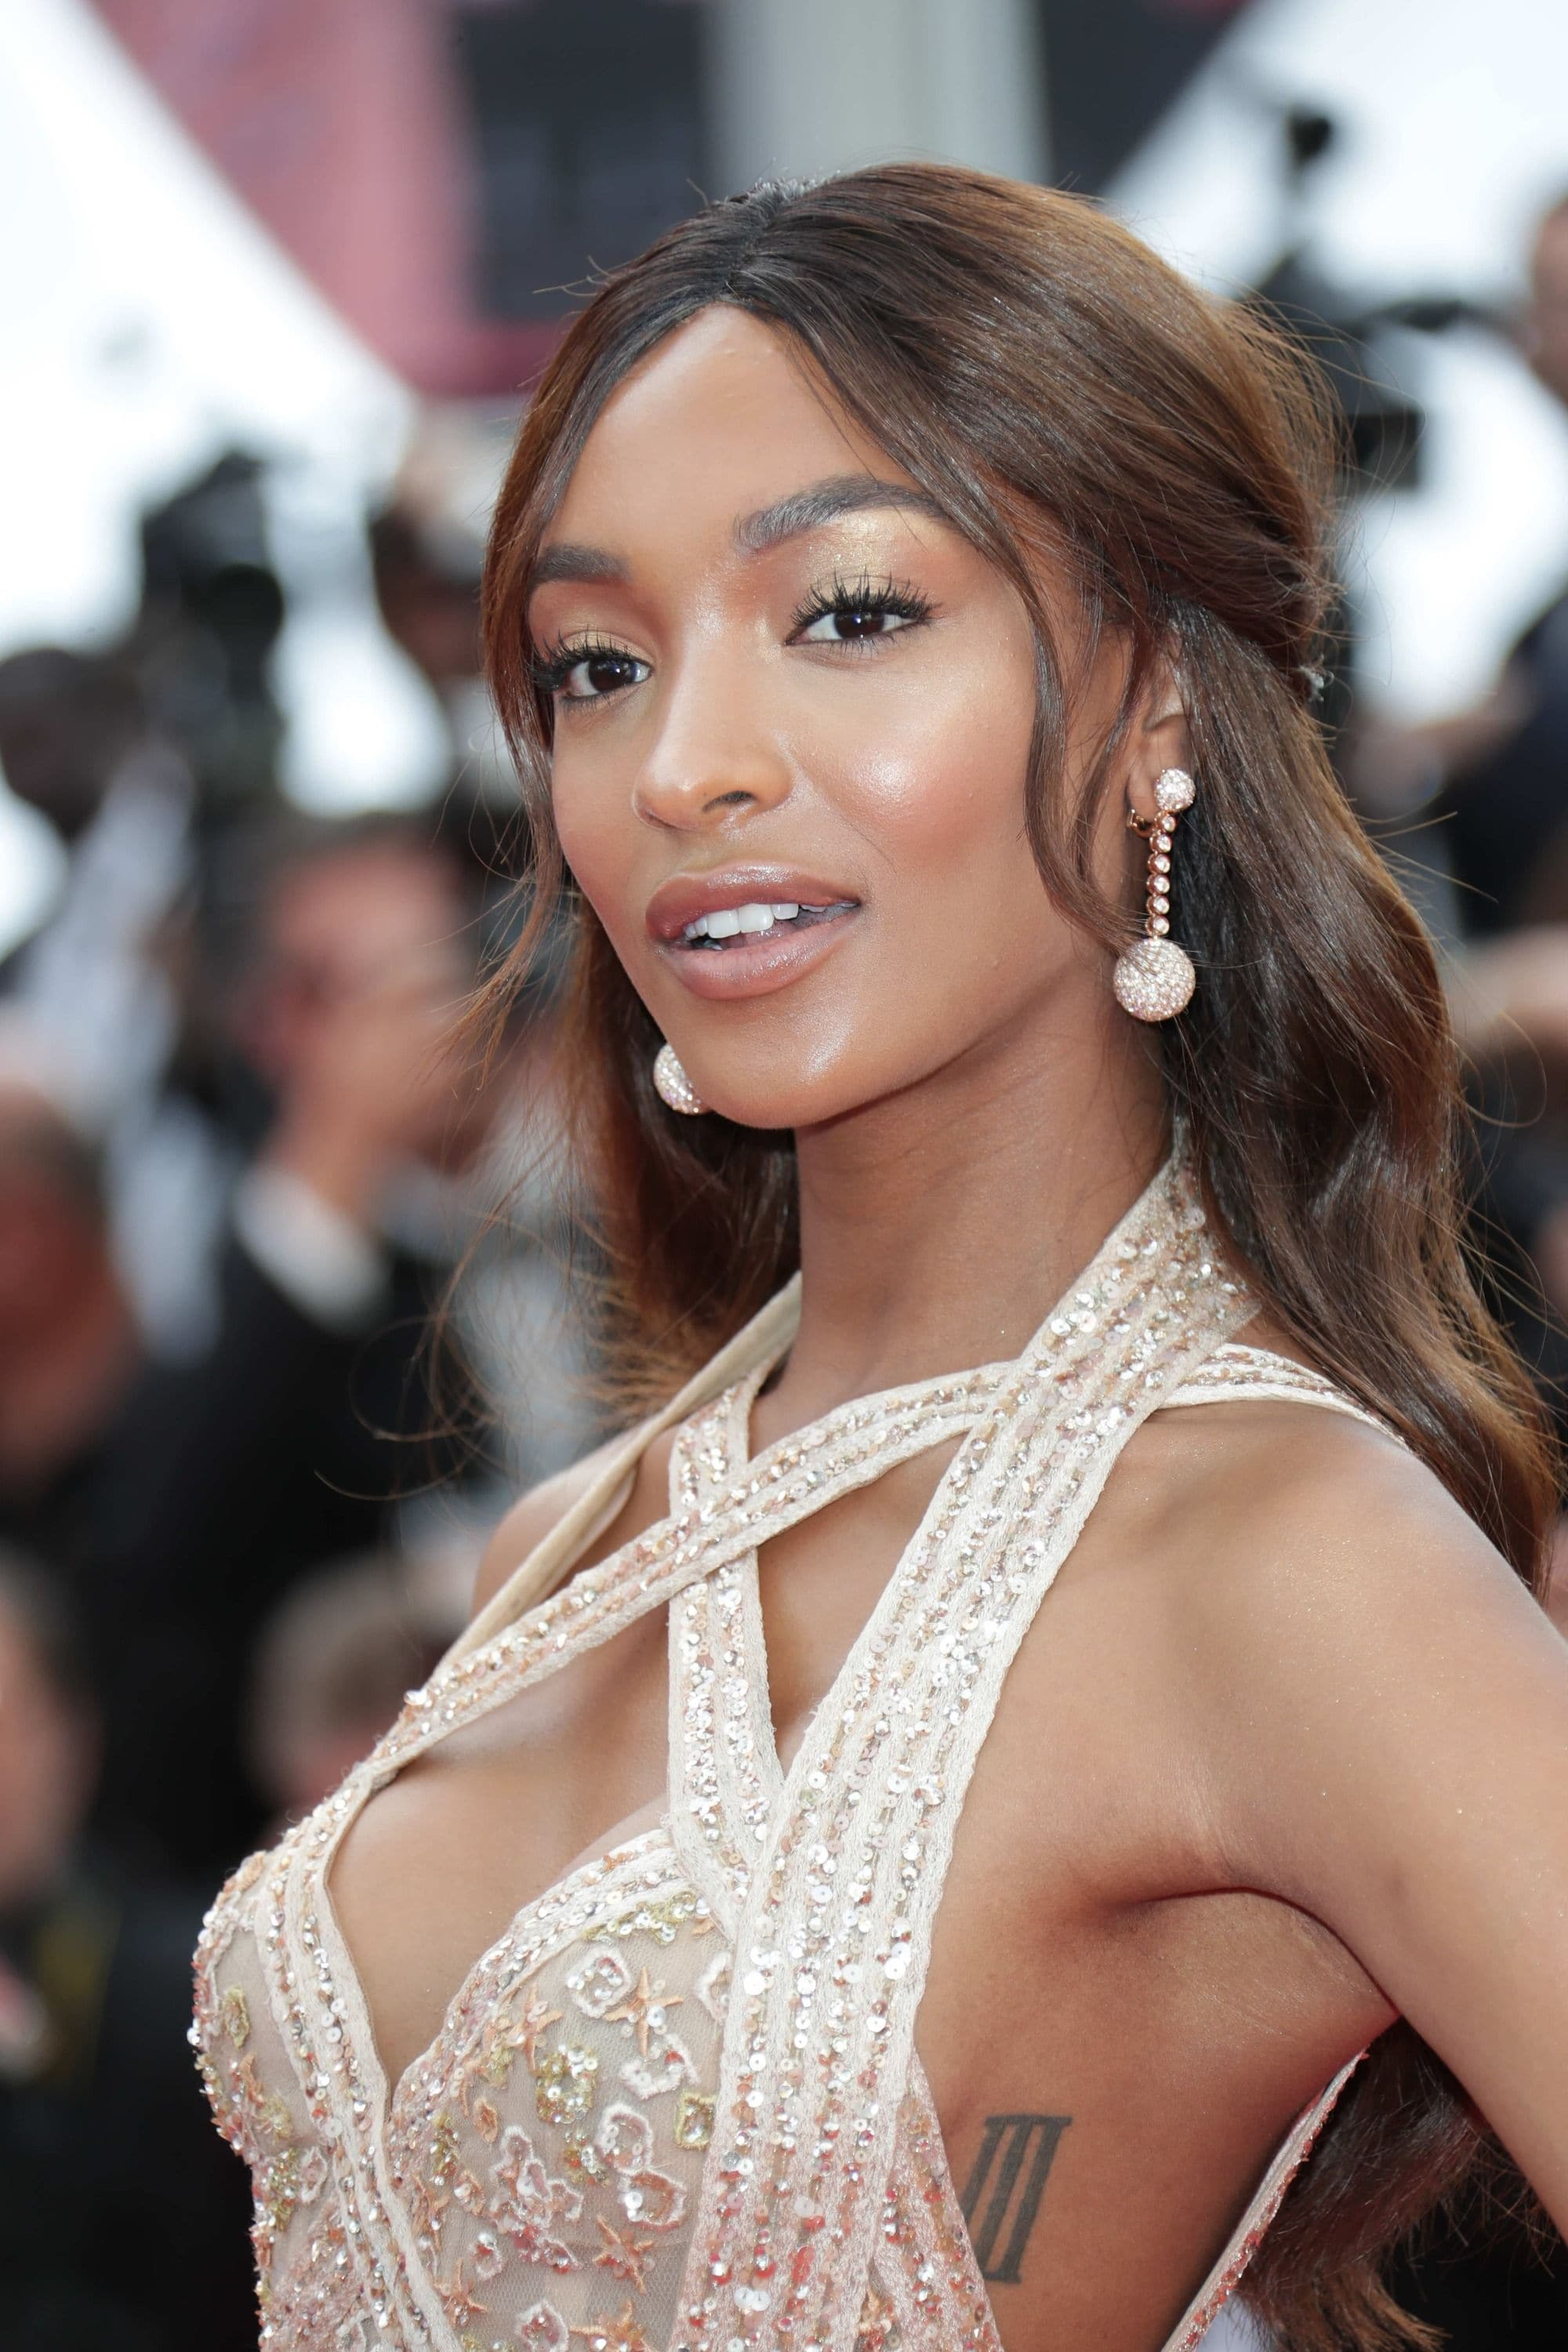 prom hairstyles for black girls: Jourdan Dunn with half up half down hairstyle with waves in it